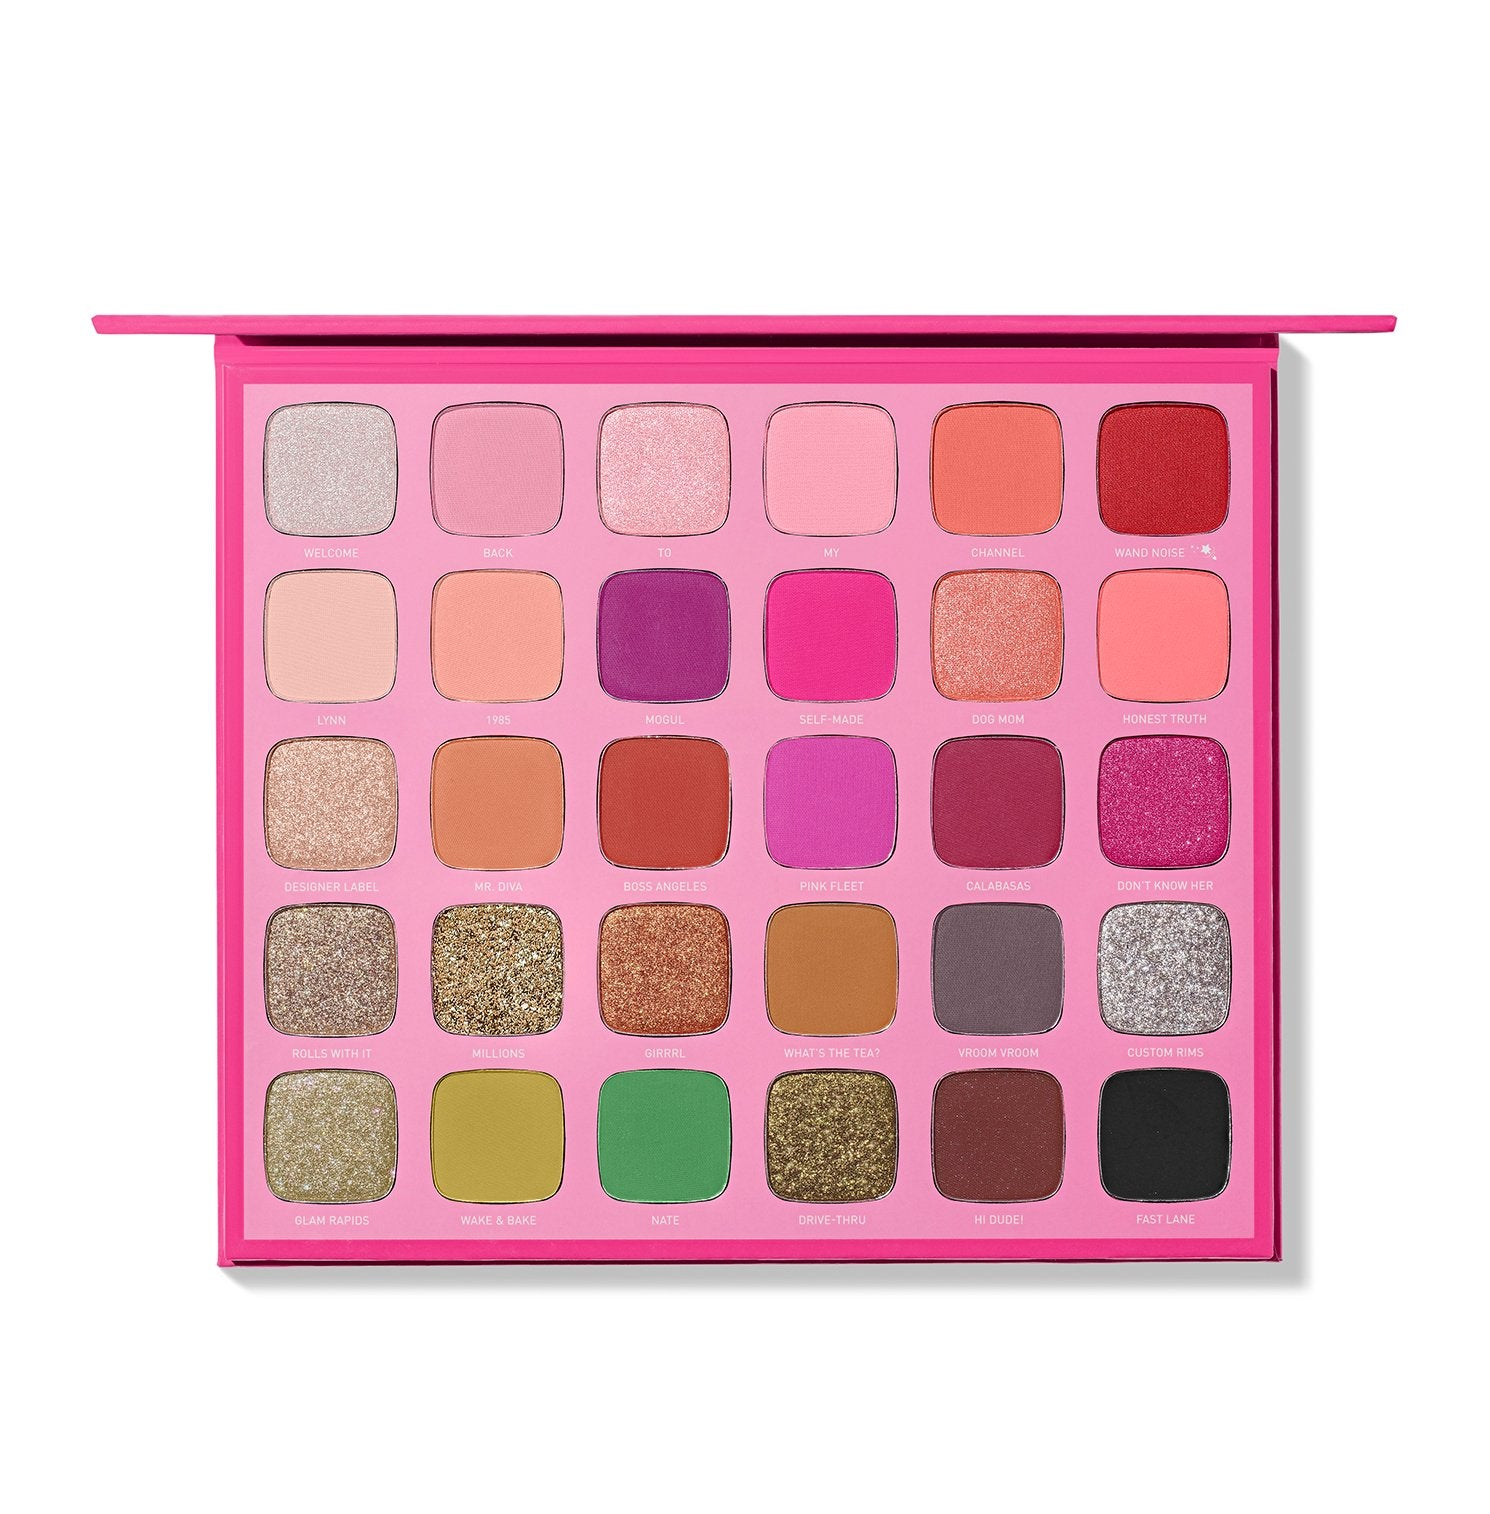 THE JEFFREE STAR EYESHADOW PALETTE, view larger image